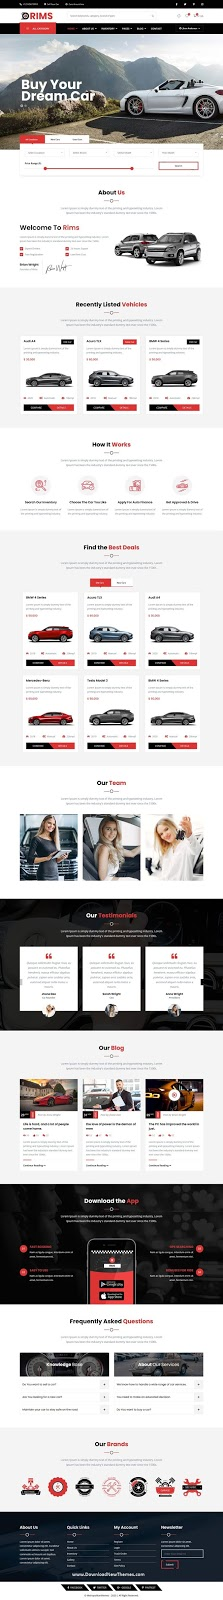 Rims Car Service Angular Template